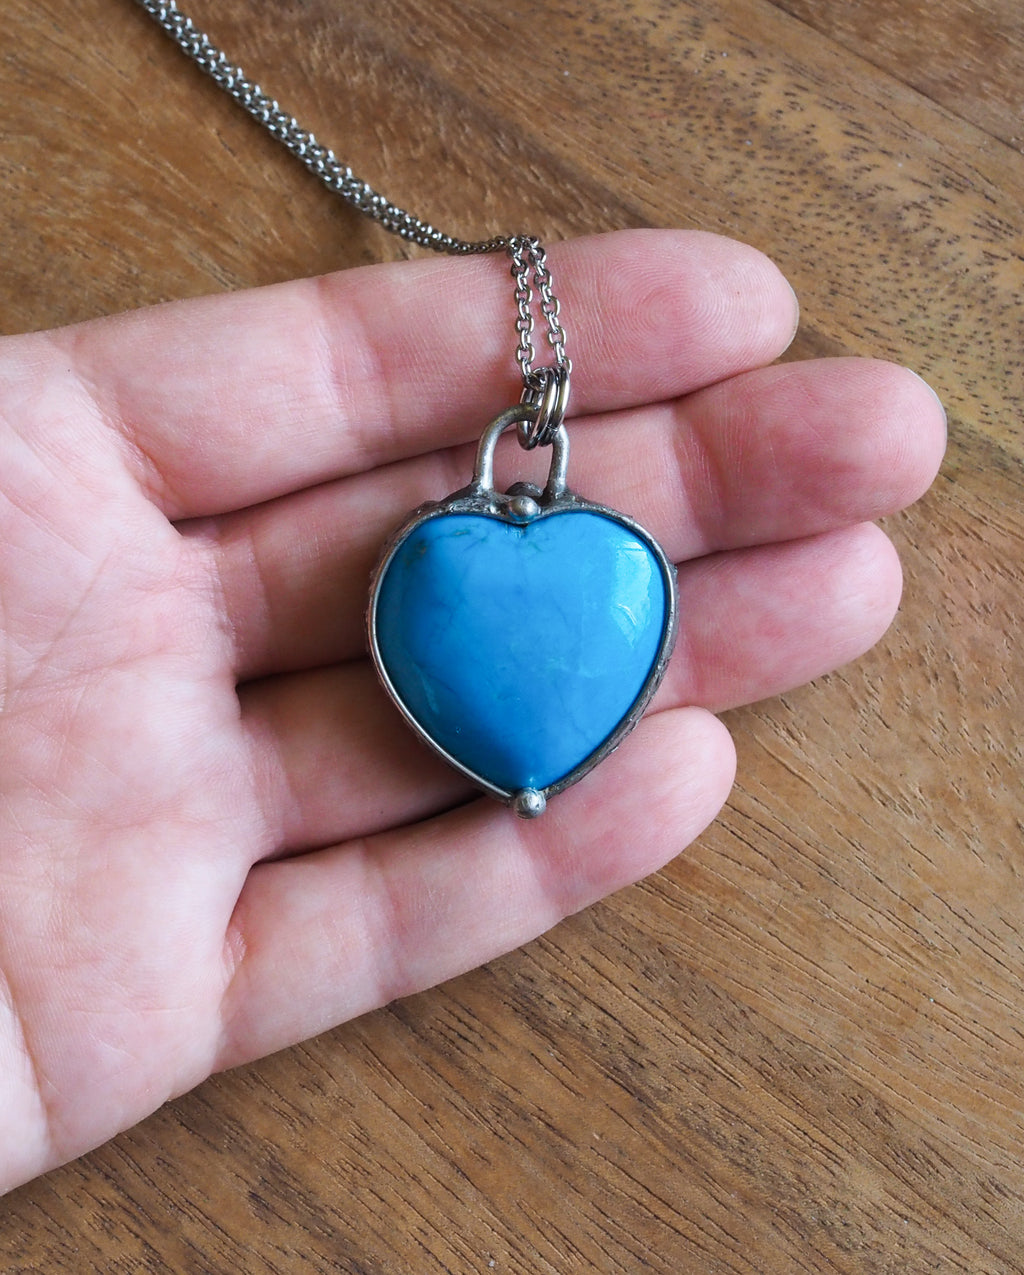 blue gemstone heart crystal necklace talisman in palm of hand